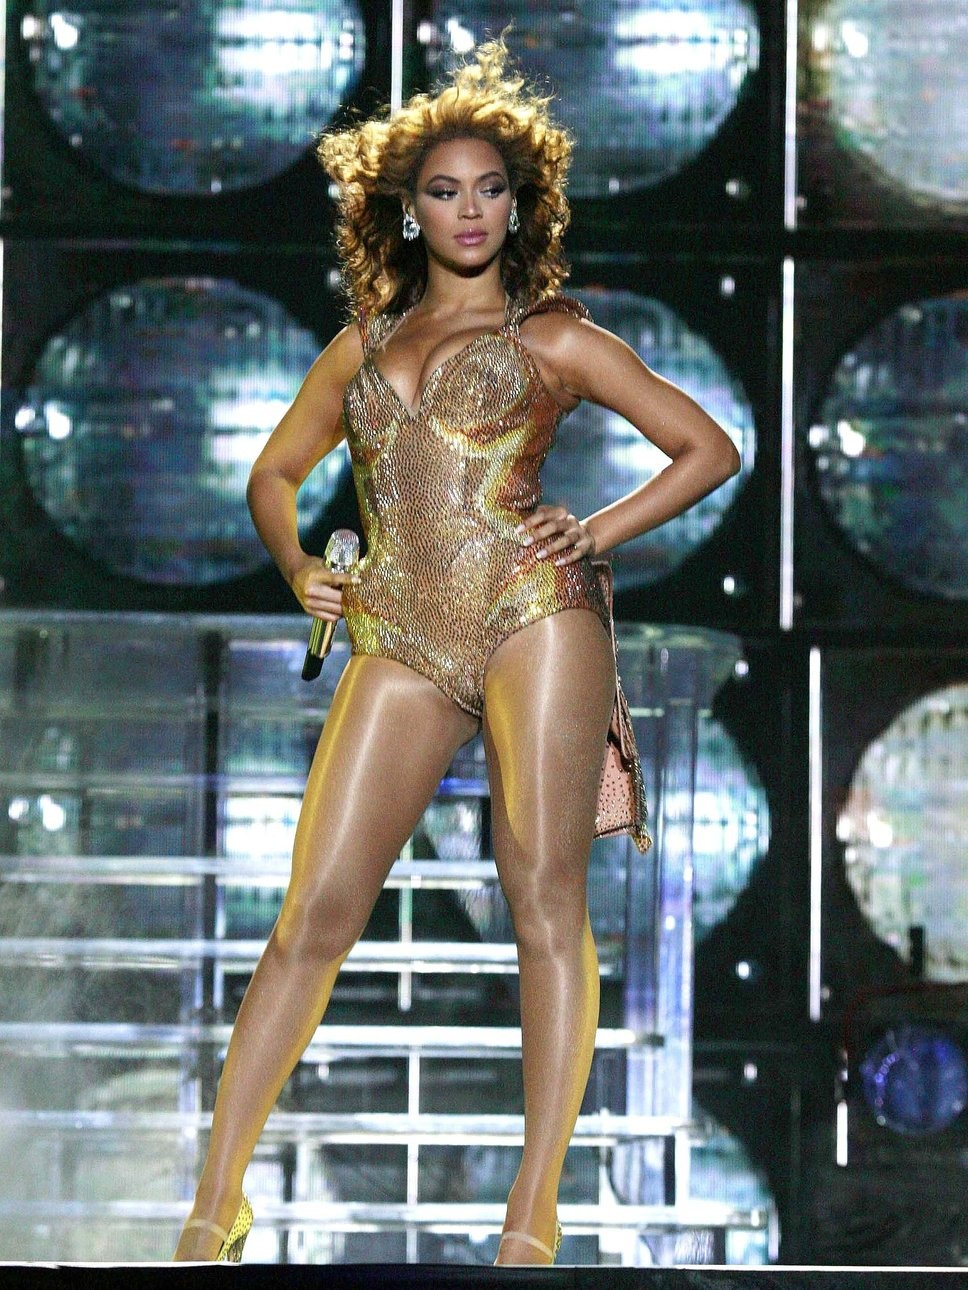 Beyonce &raquo; Beyonc Knowles